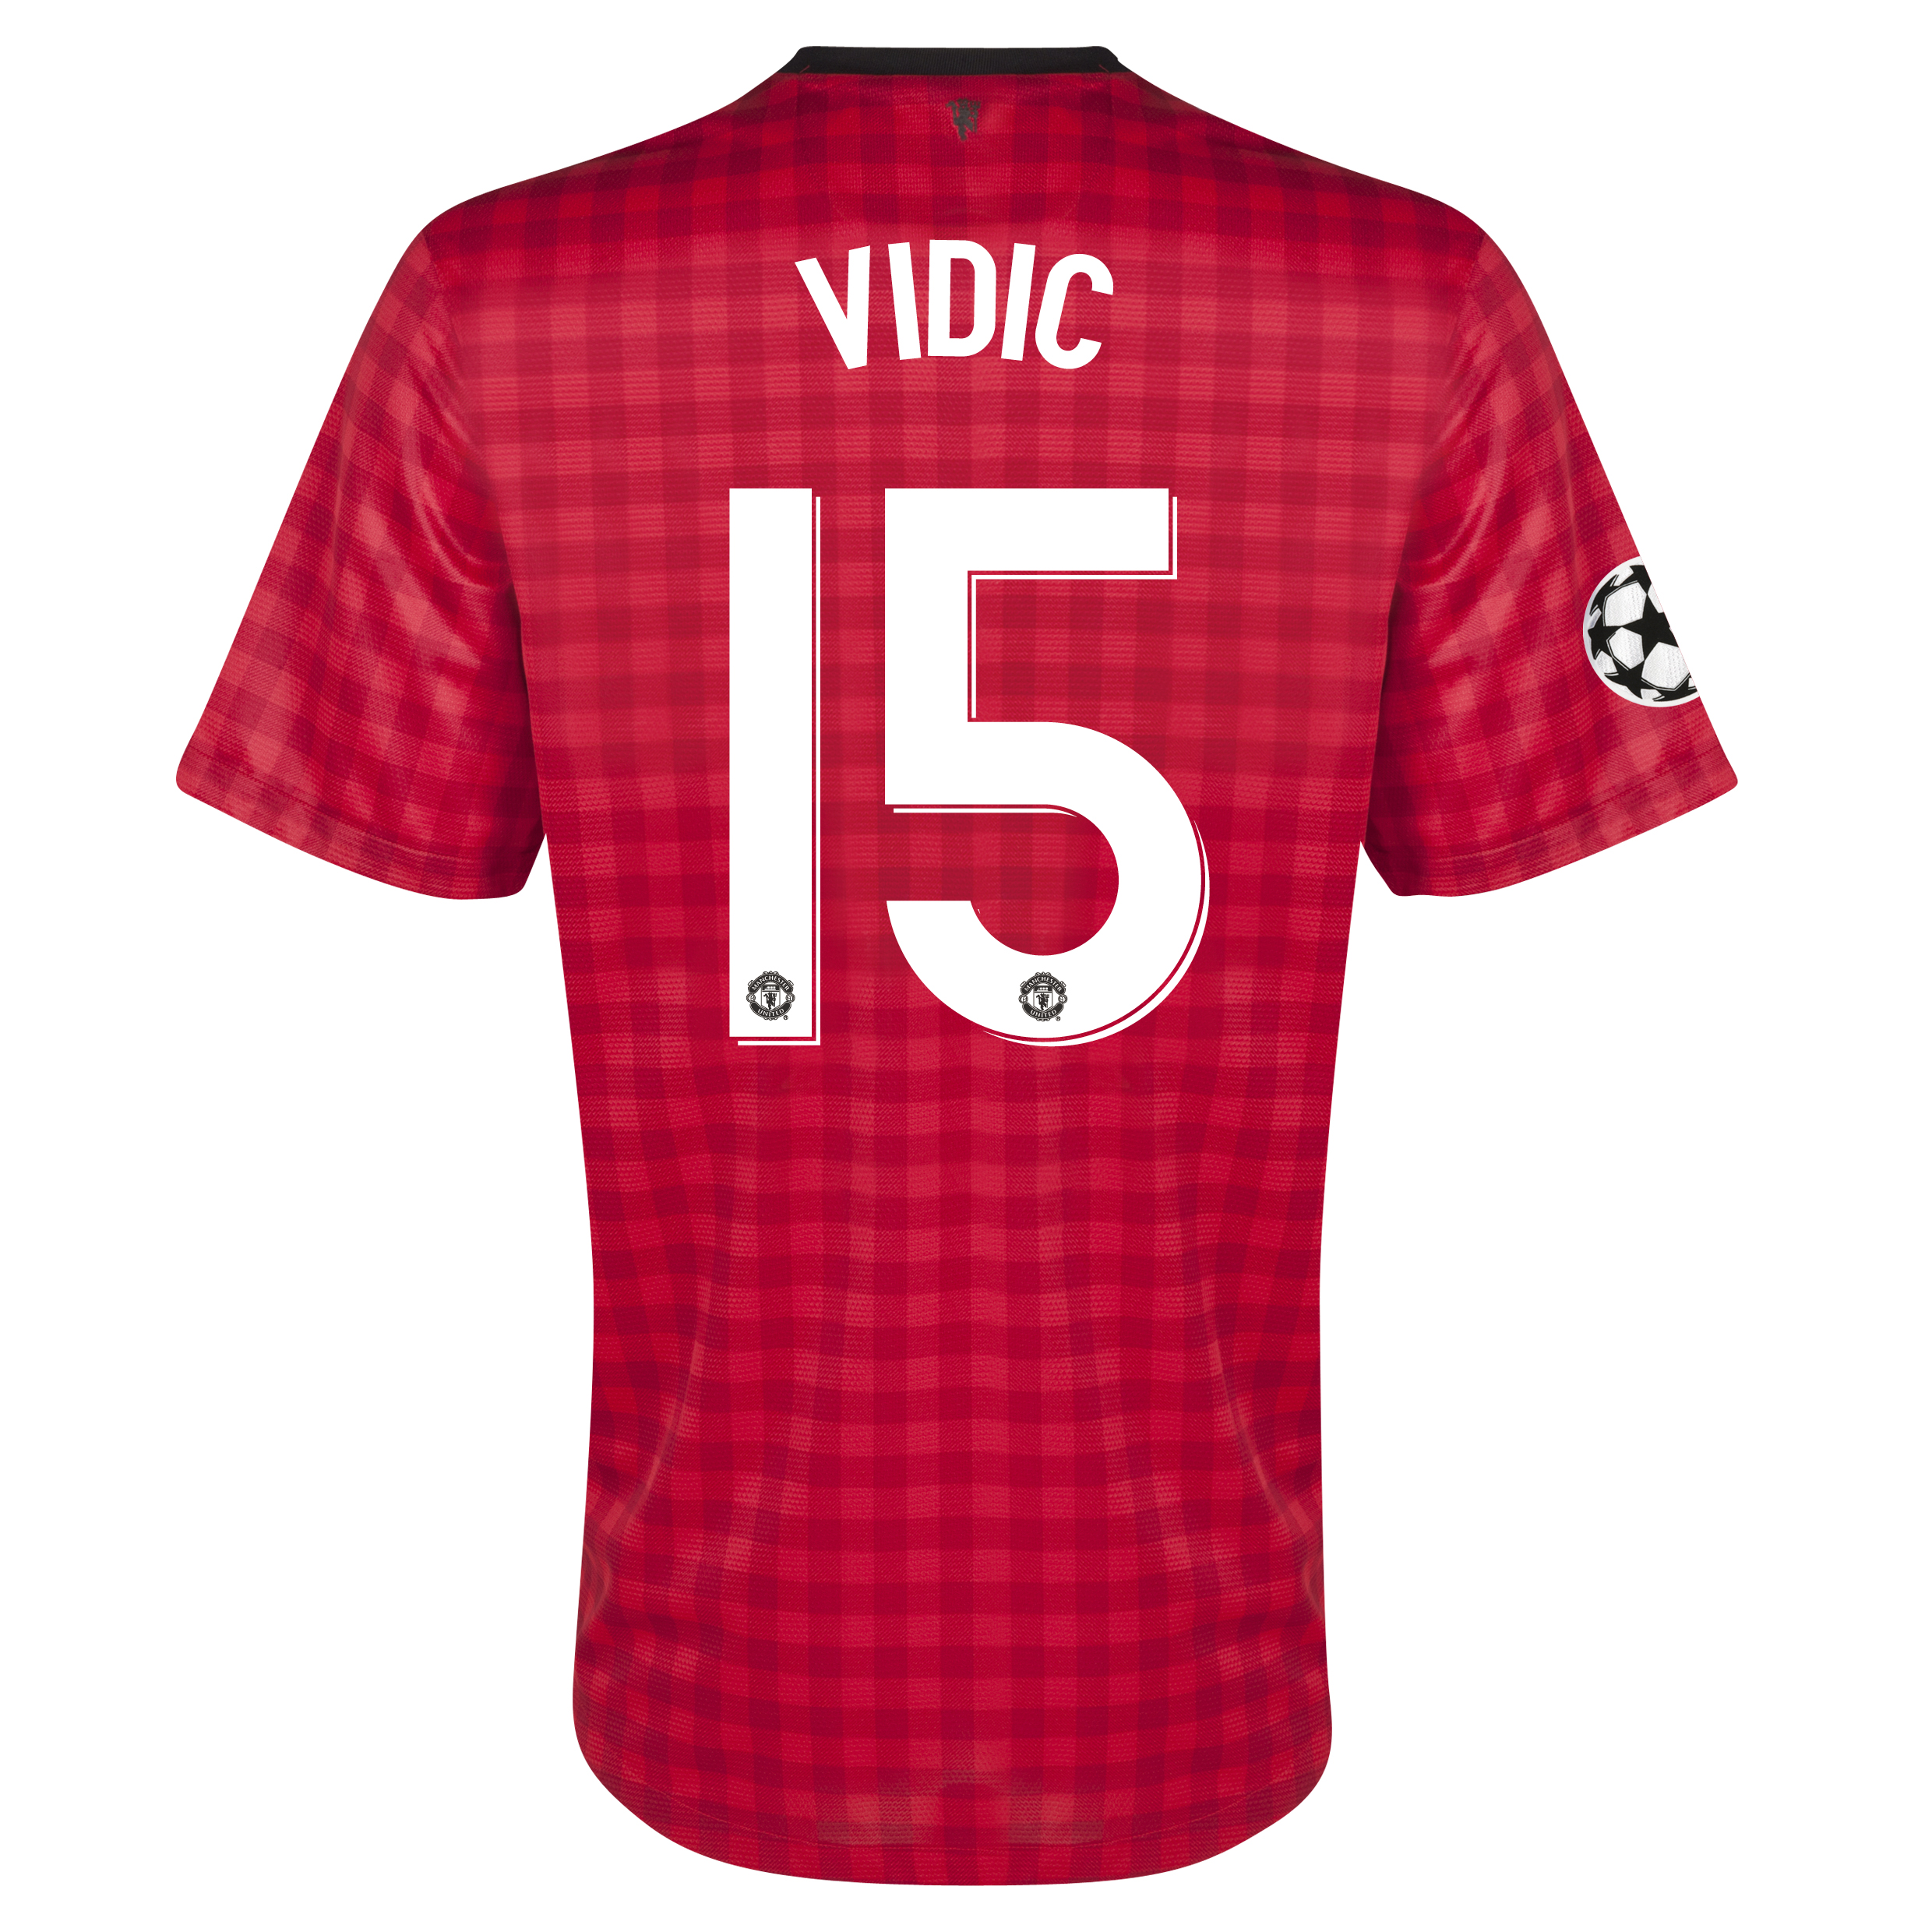 Man United UEFA Champions League Home Shirt 2012/13  - Youths with Vidic 15 printing